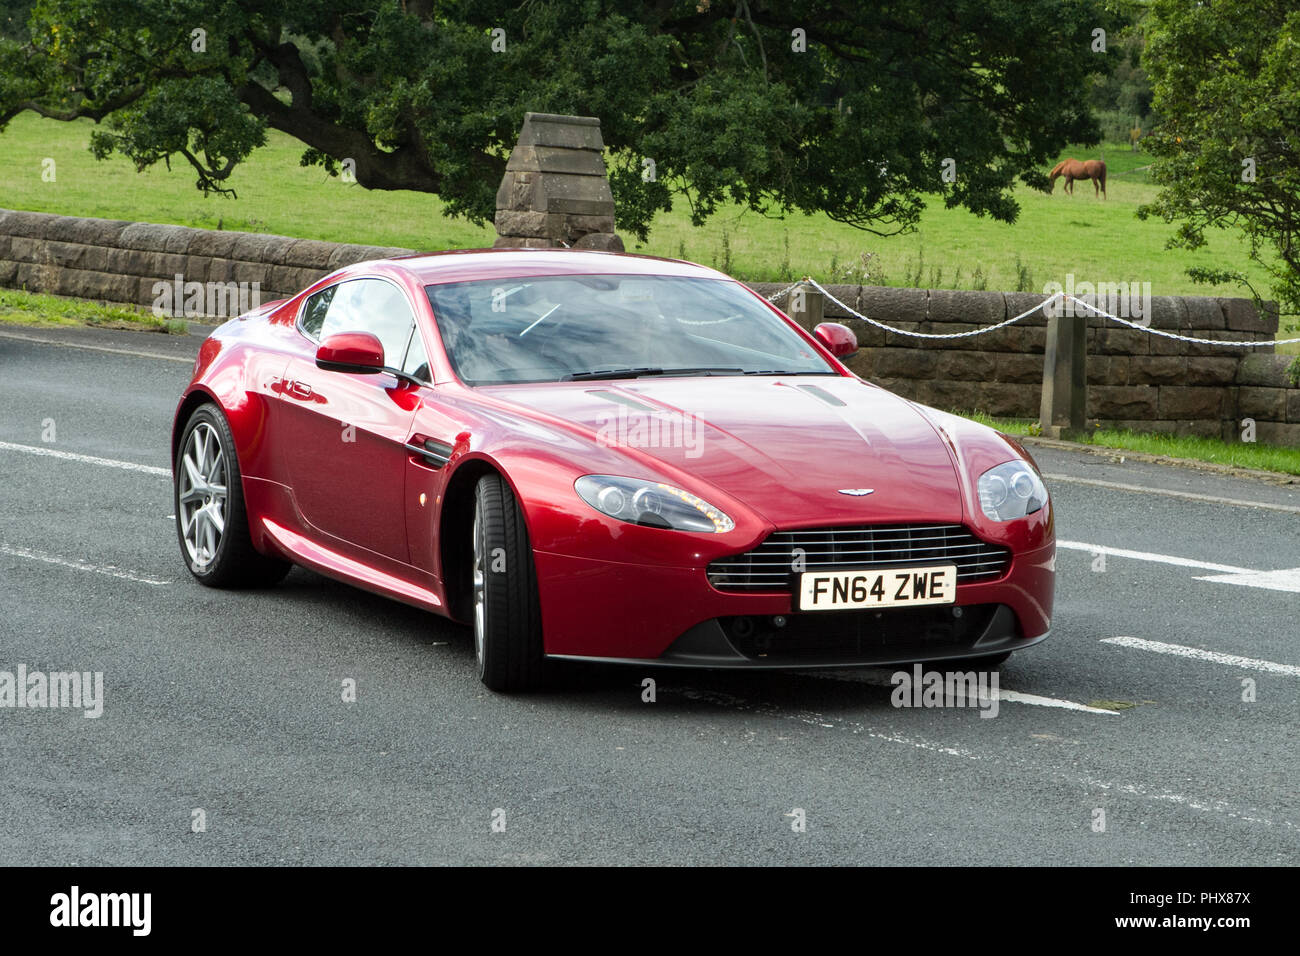 2015 Aston Martin Vantage V8 Red Classic Cars Veteran Restored Car Classic Vehicle Automobile Old Transportation Retro Transport Uk Stock Photo Alamy